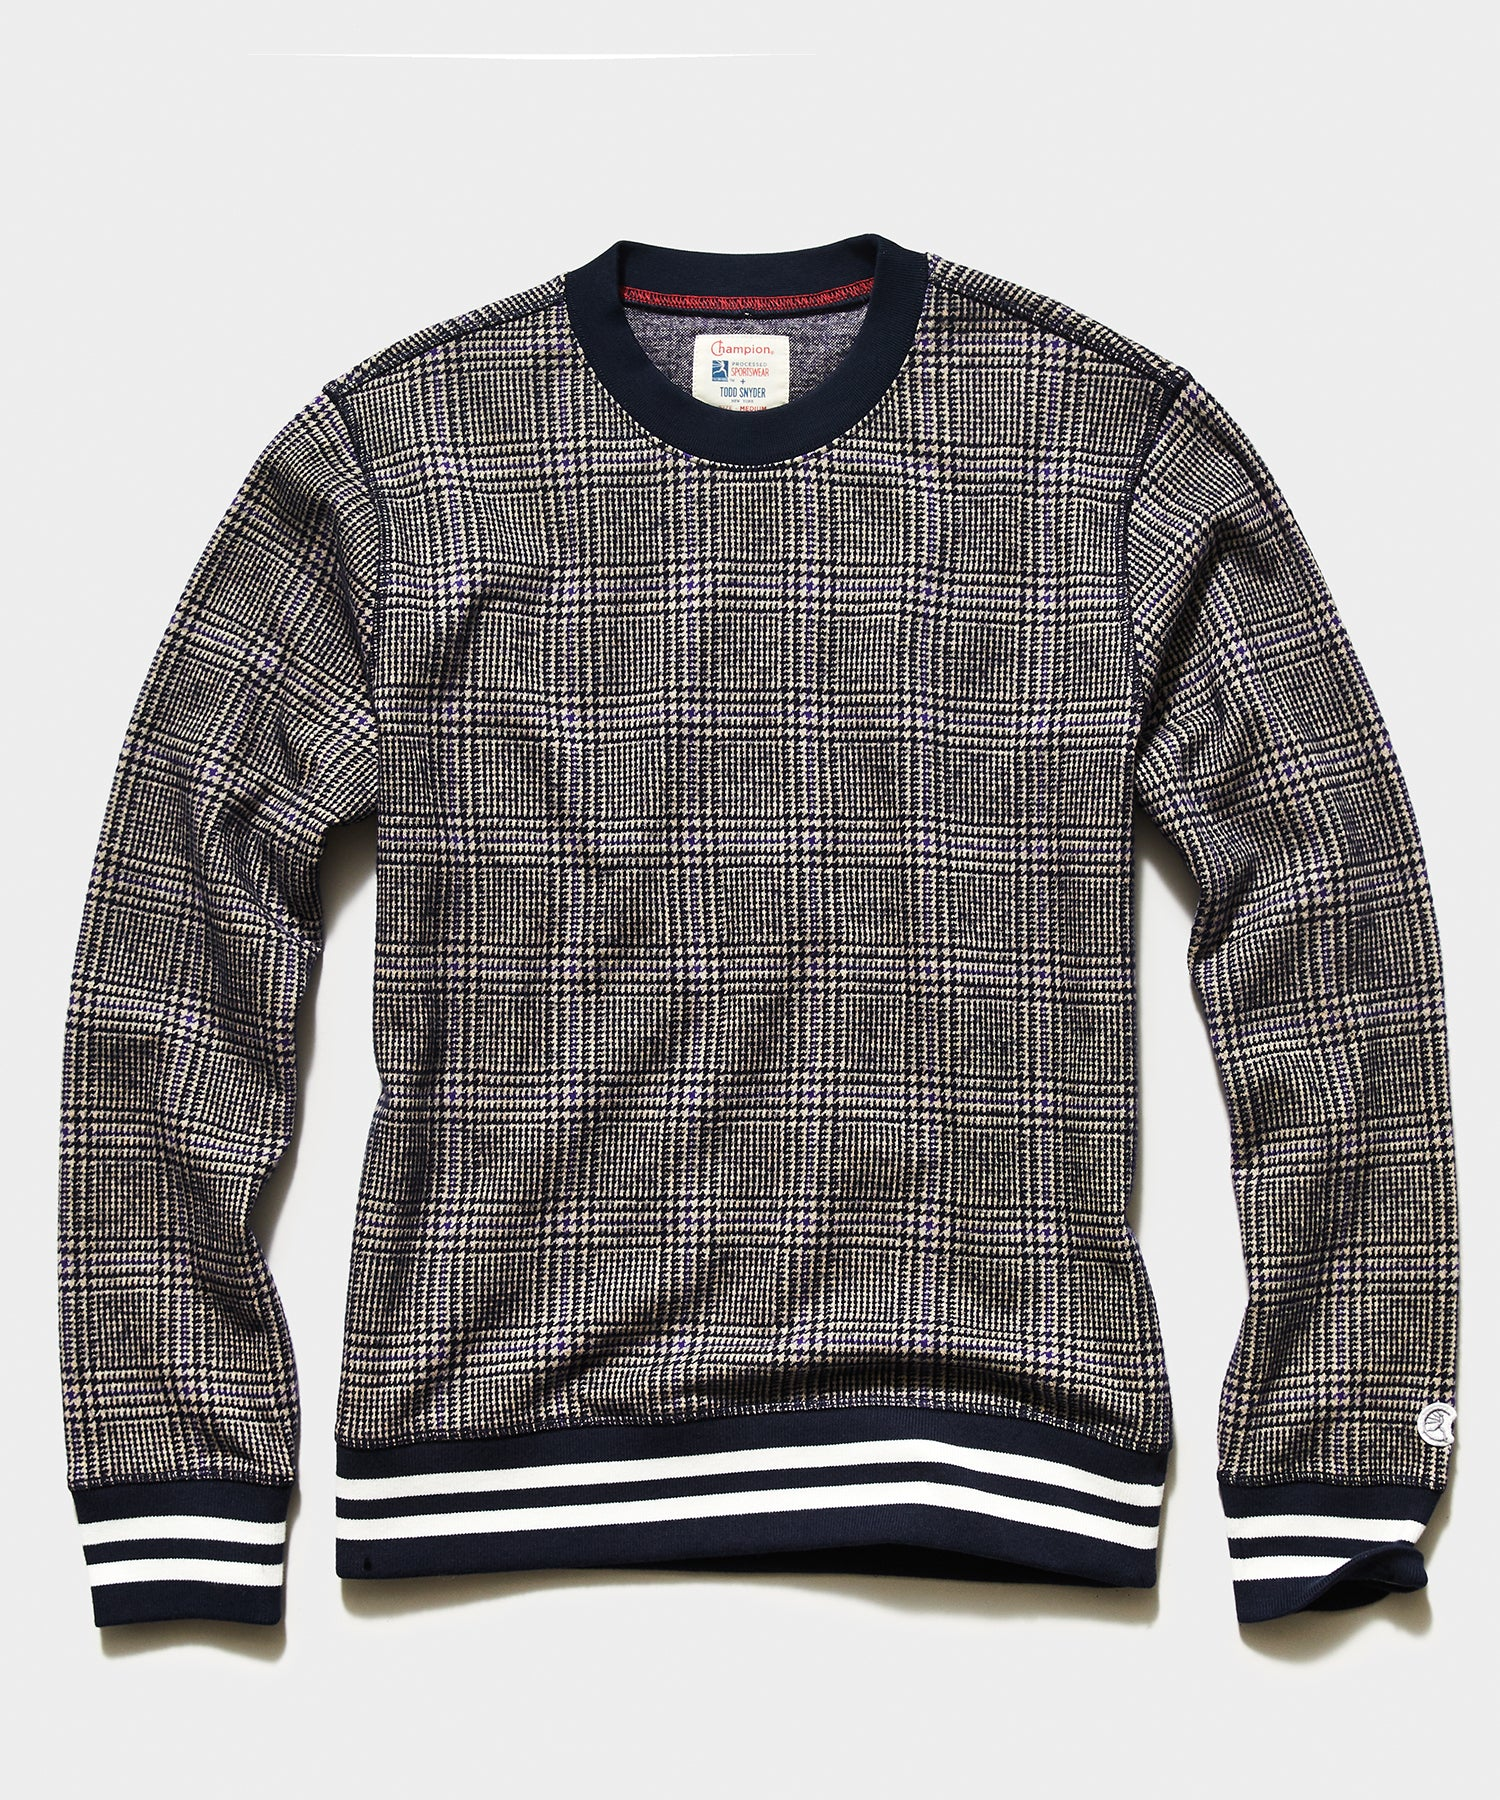 Champion Wool Glen plaid Crewneck Sweatshirt in Navy